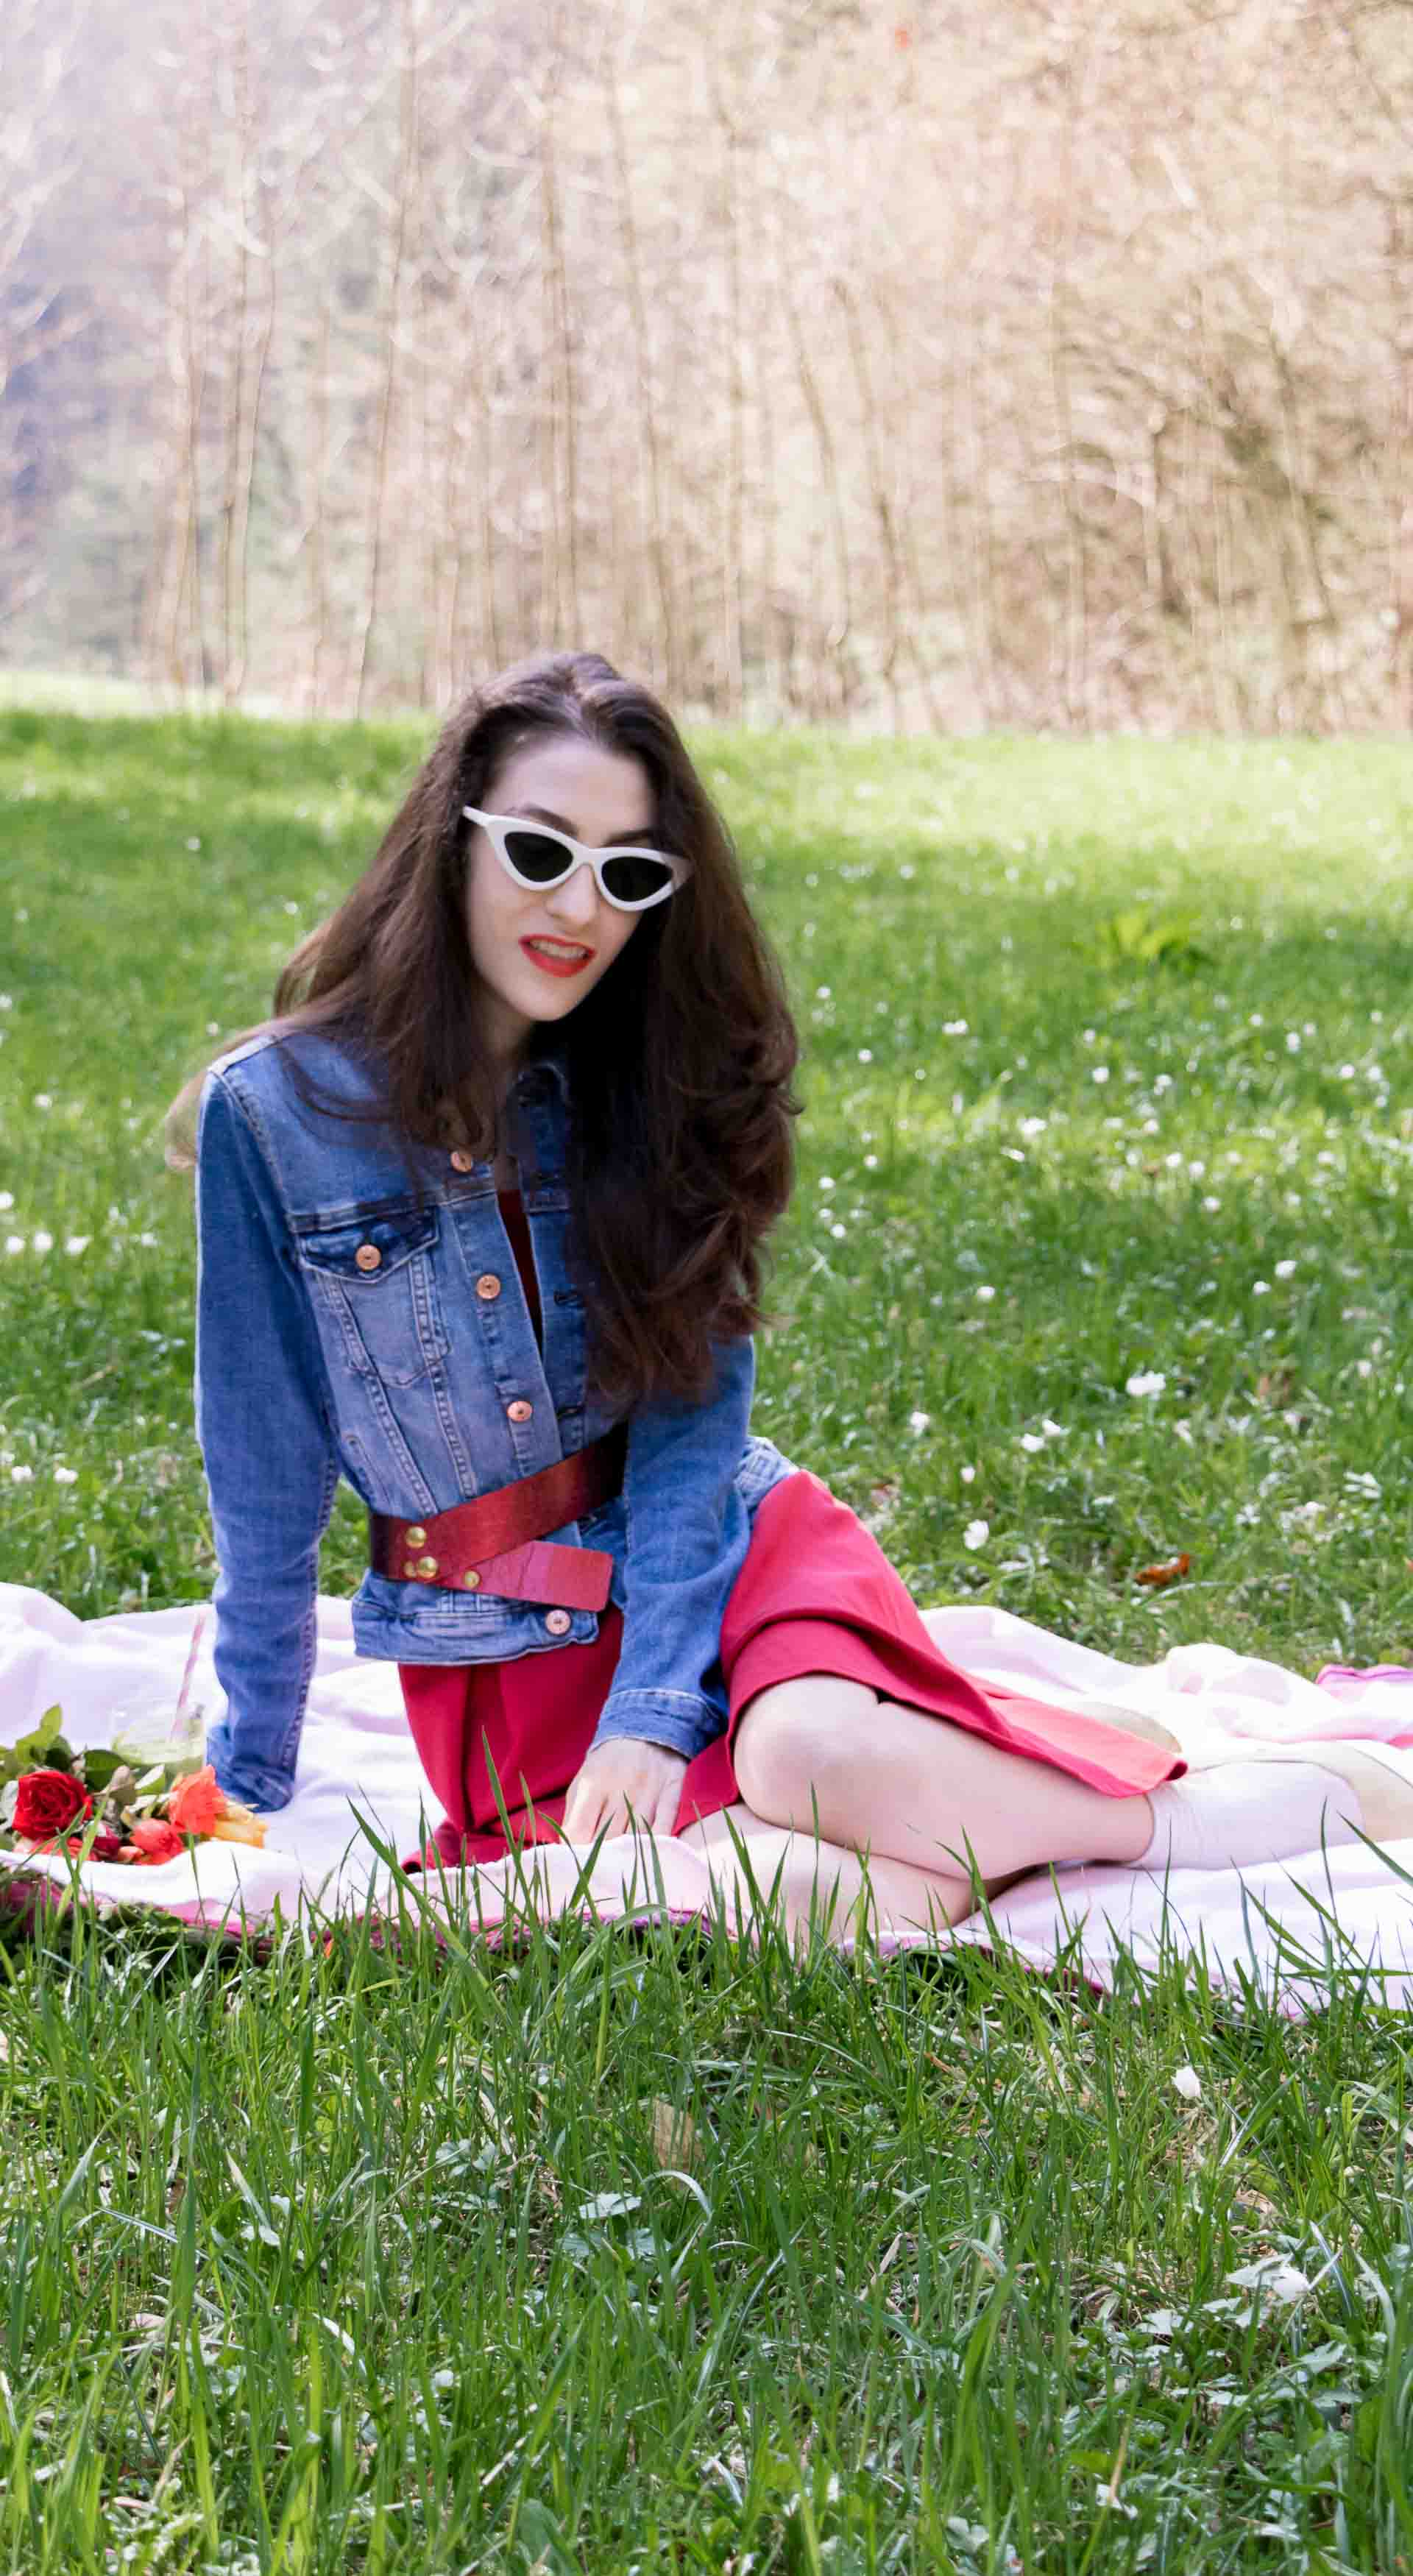 Veronika Lipar Fashion Blogger of Brunette from Wall Street wearing red dress, dangling belt, blue denim jacket, white socks and white pumps, white lolita cat-eye sunglasses from Le Specs, Nannacay raffia basket bag for spring picnic